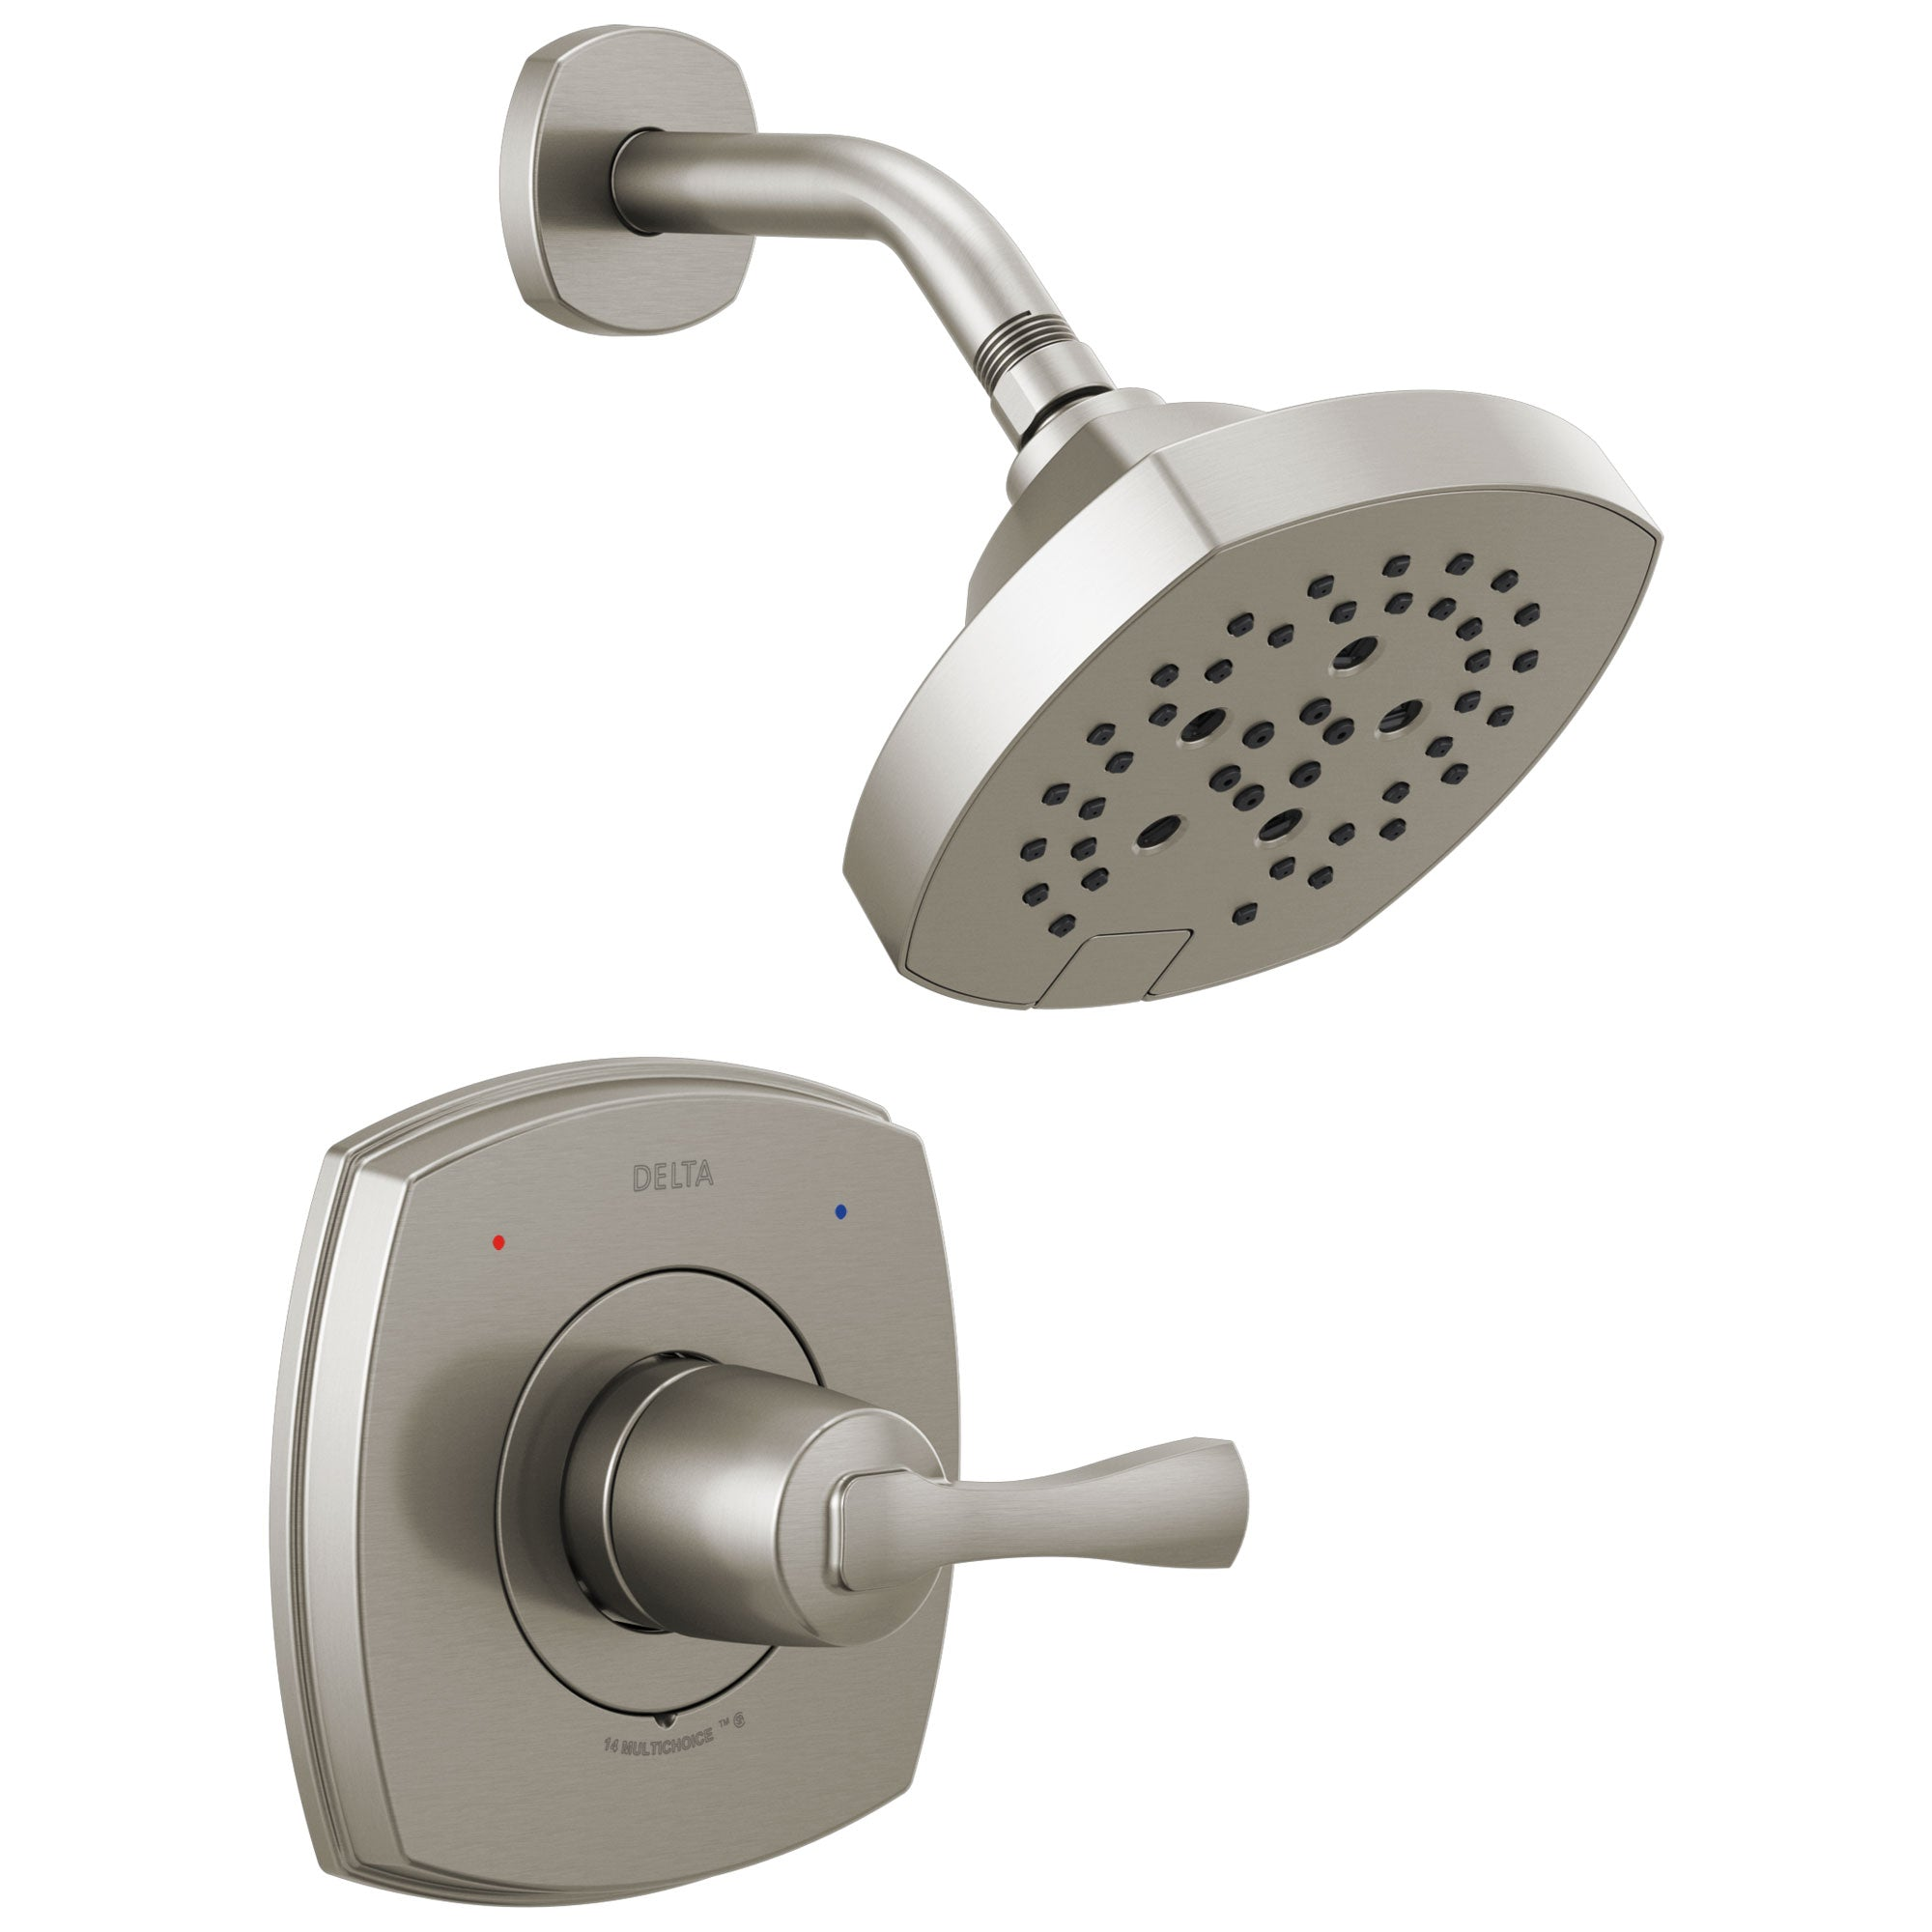 Delta Stryke Stainless Steel Finish 14 Series Shower Only Faucet Trim Kit (Requires Valve) DT14276SS